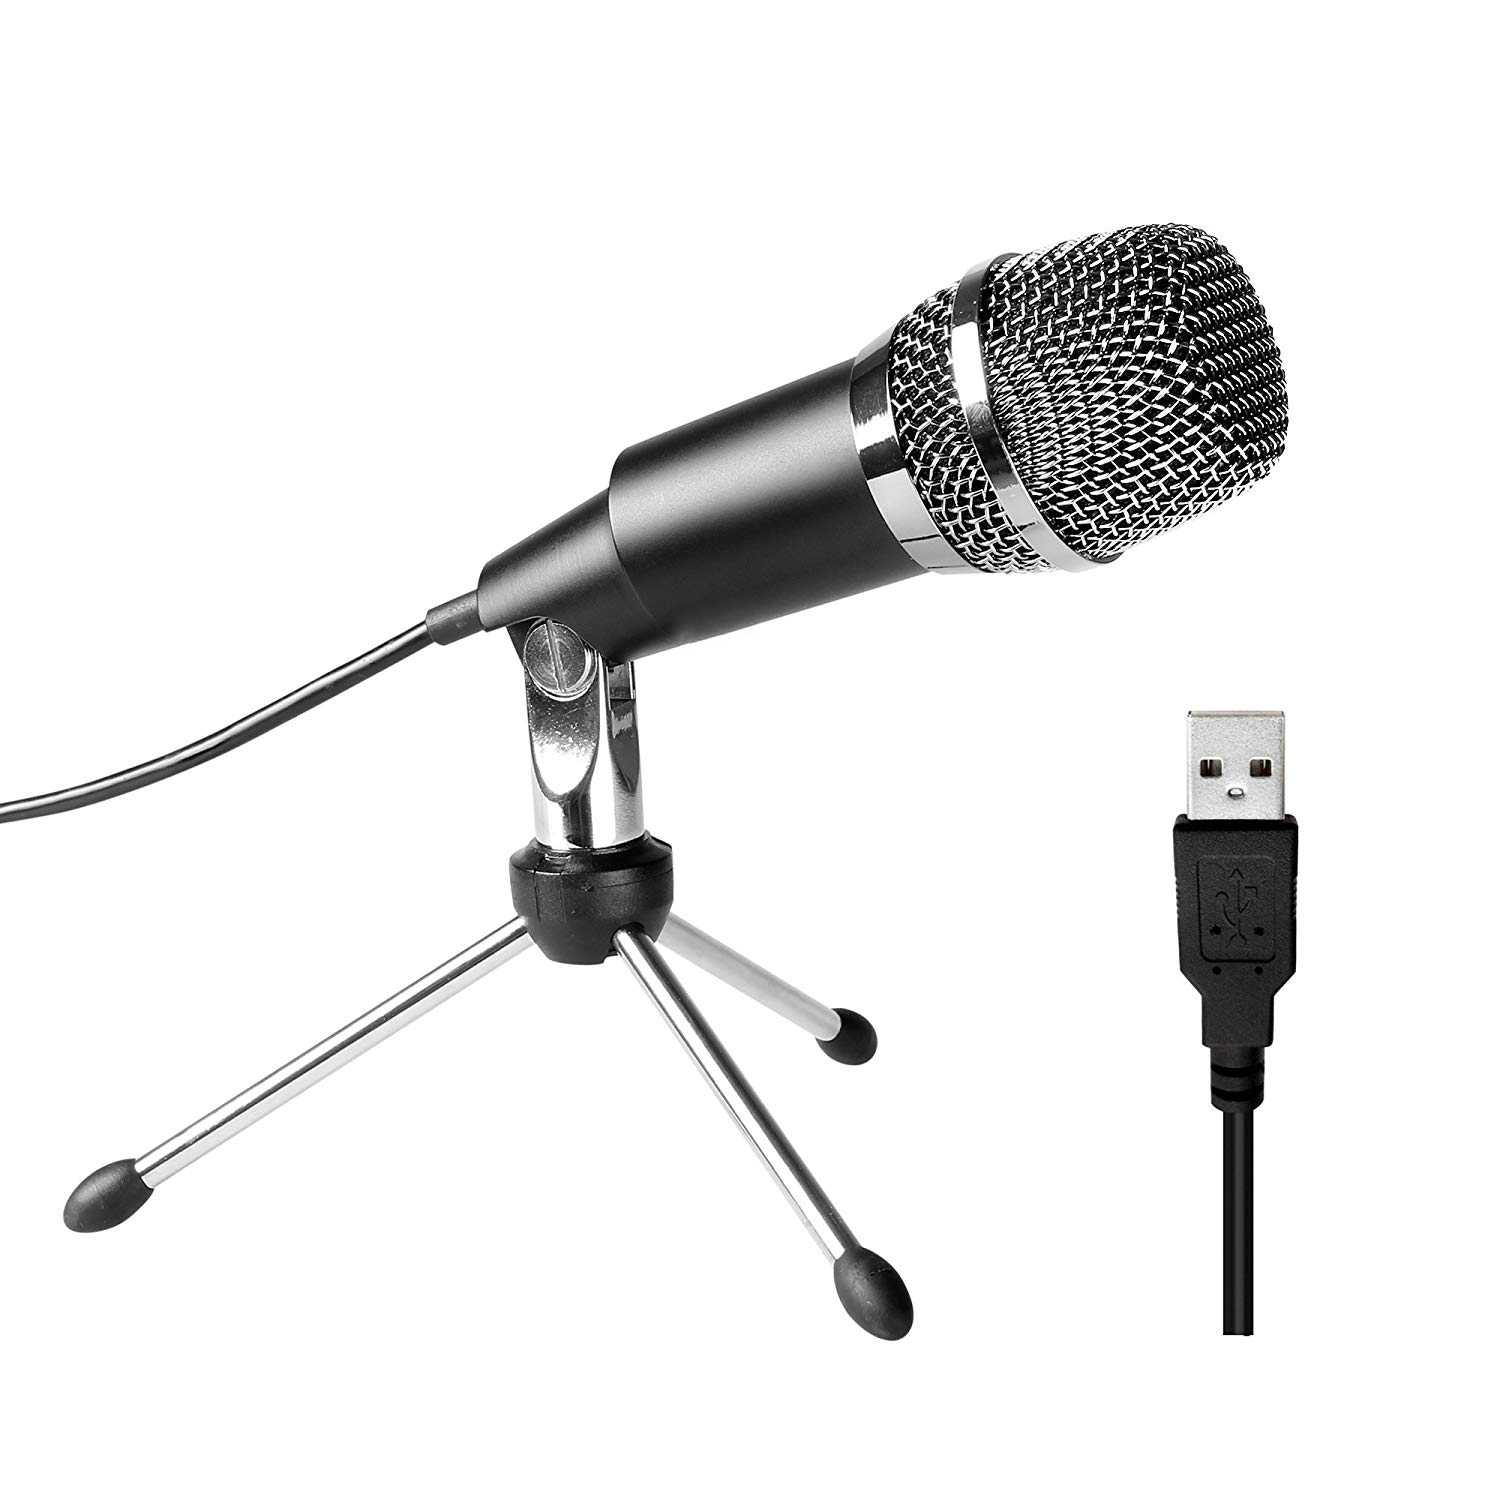 USB Microphone, Plug &Play Home Studio USB Condenser Microphone for Skype, Recordings for YouTube, Google Voice Search, Games( image